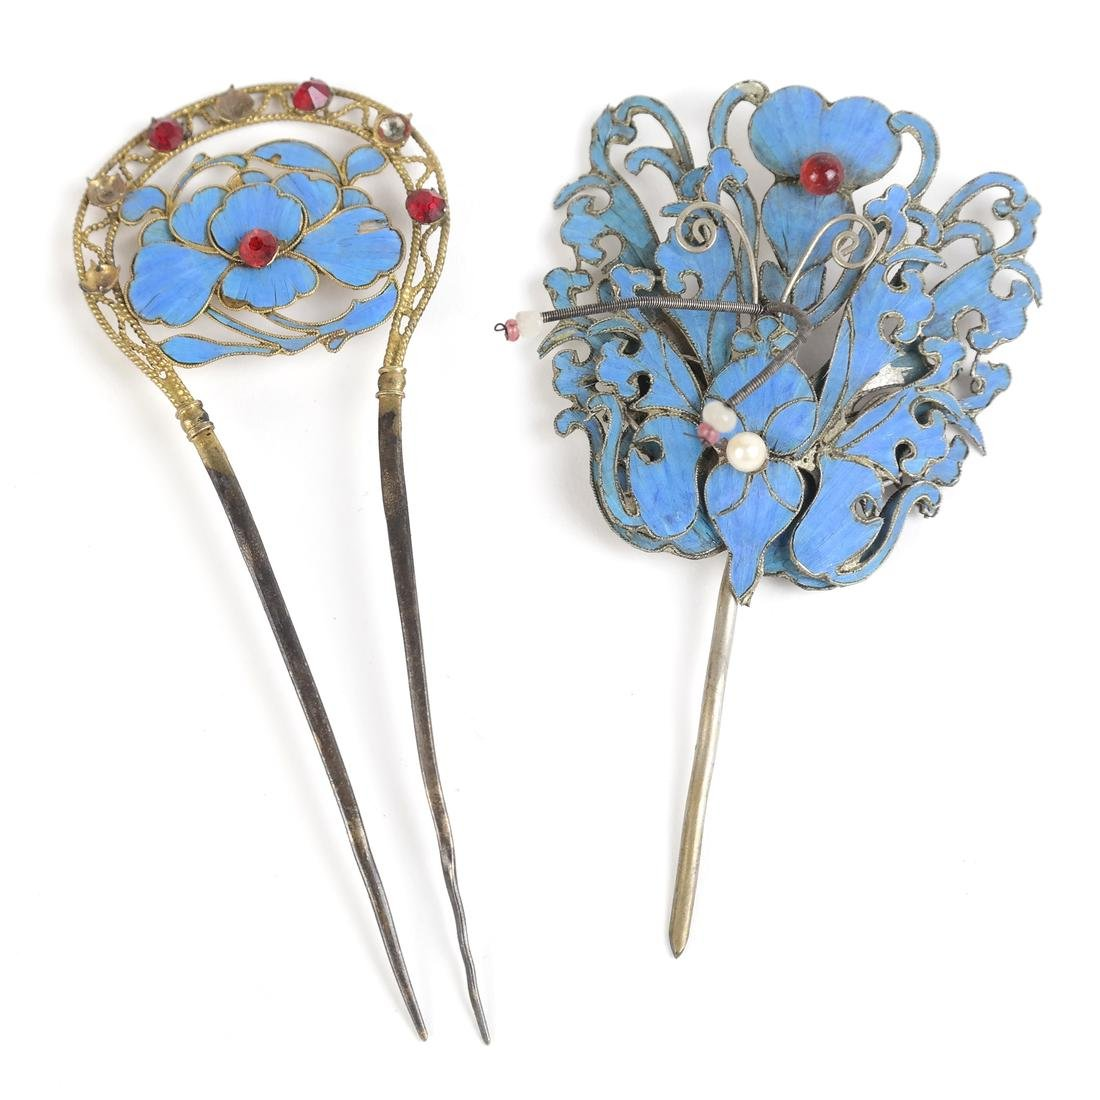 Two Chinese Kingfisher Hairpins